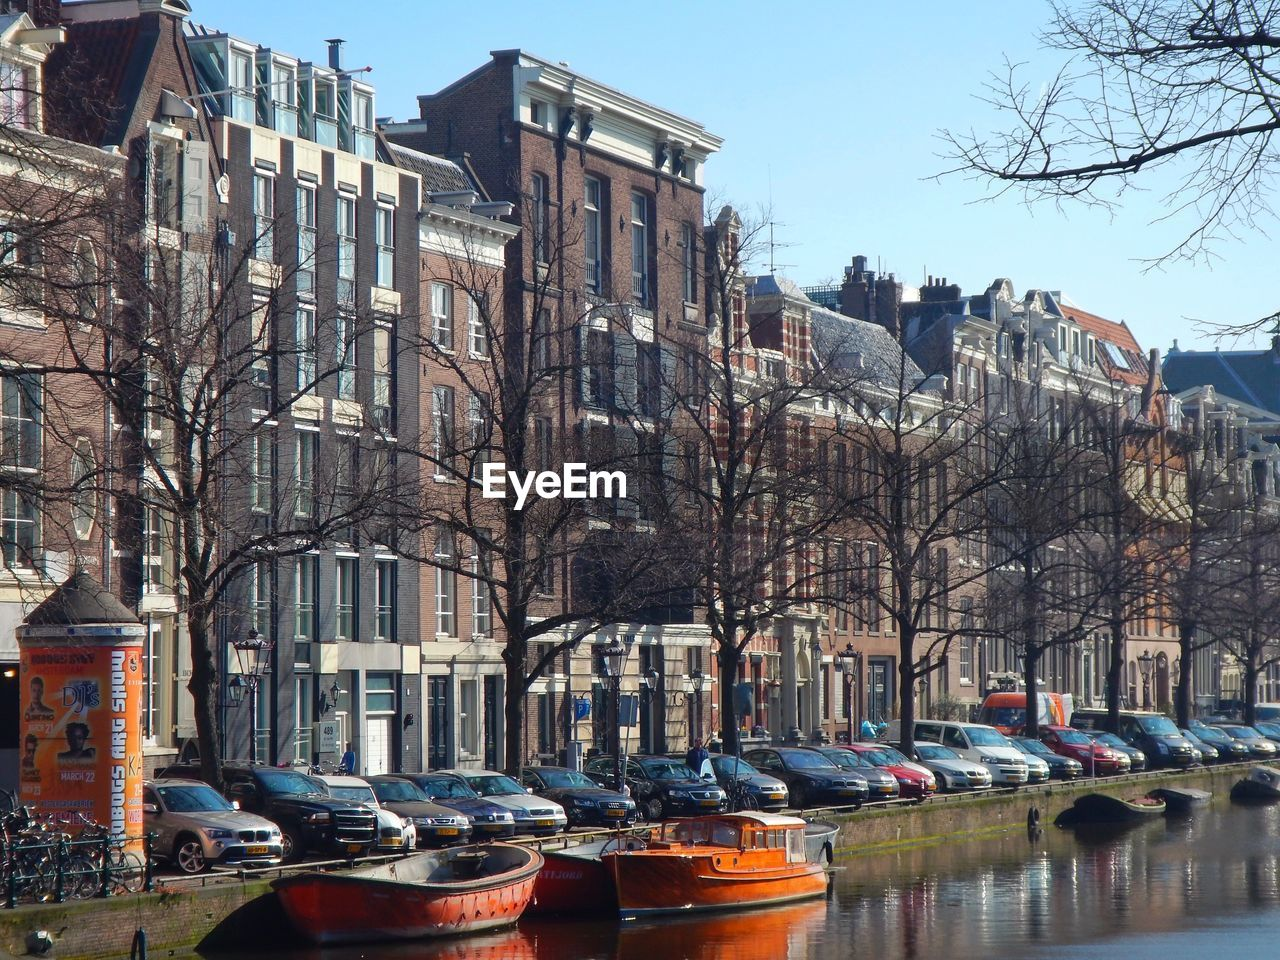 Boats moored at canal by buildings against clear sky